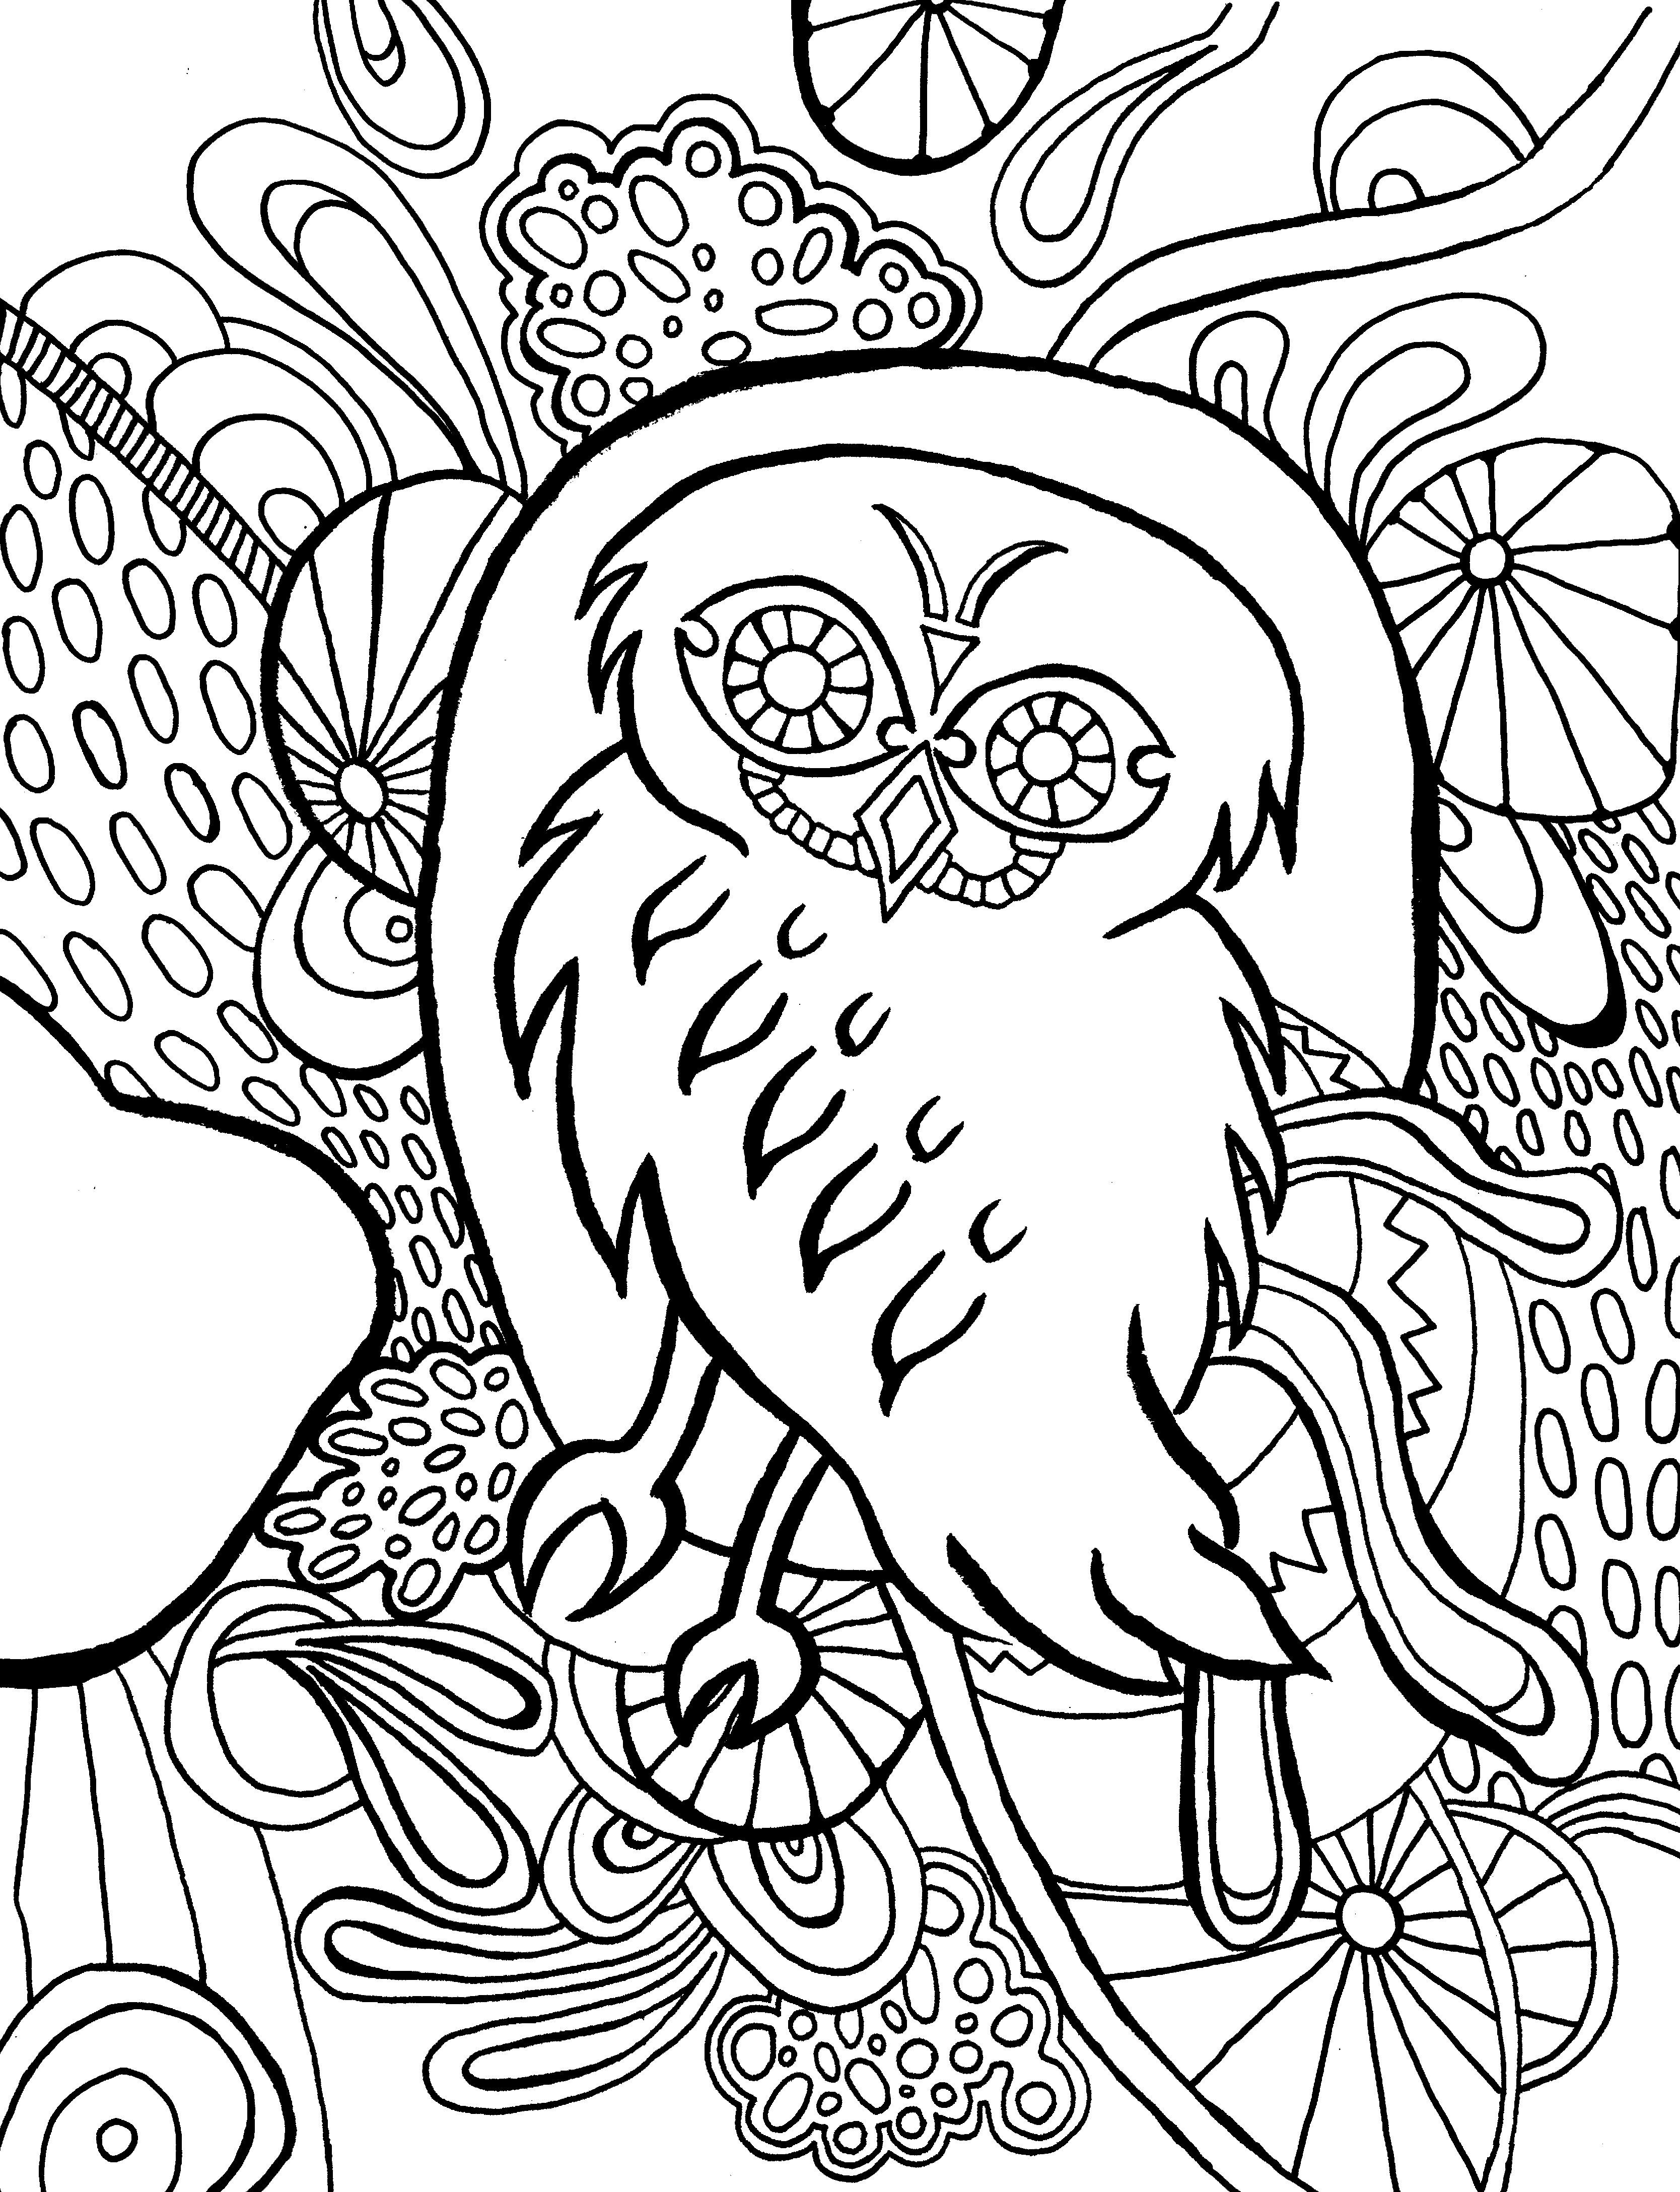 abstract owl coloring pages intricate animal coloring pages best of hey everyone check owl coloring abstract pages